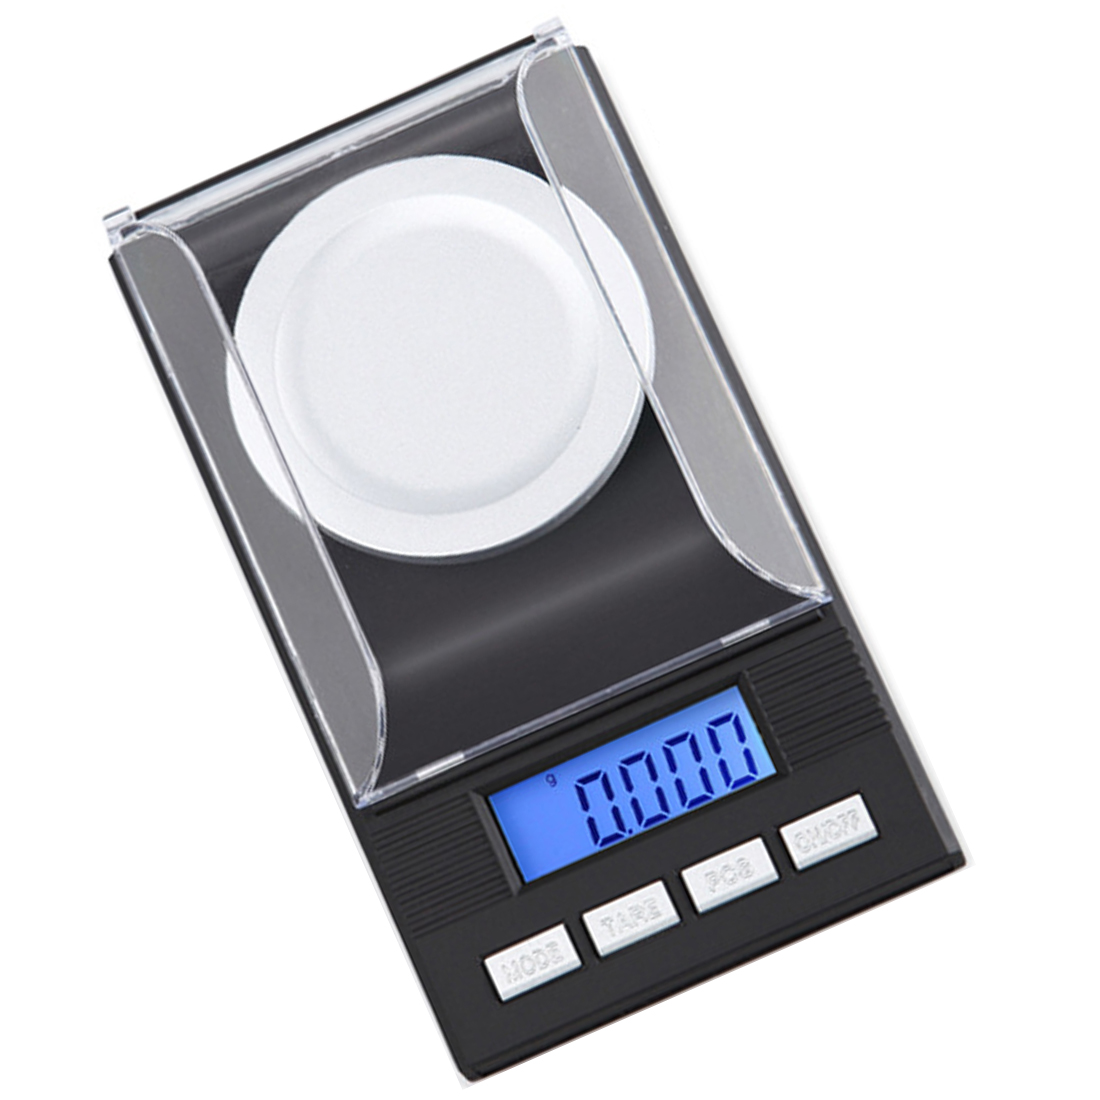 20g/50g/100g x 0.001g Mini LCD Digital Jewelry Scales Lab Weight High Precision Scale Medicinal Portable Mini Electronic Balance20g/50g/100g x 0.001g Mini LCD Digital Jewelry Scales Lab Weight High Precision Scale Medicinal Portable Mini Electronic Balance